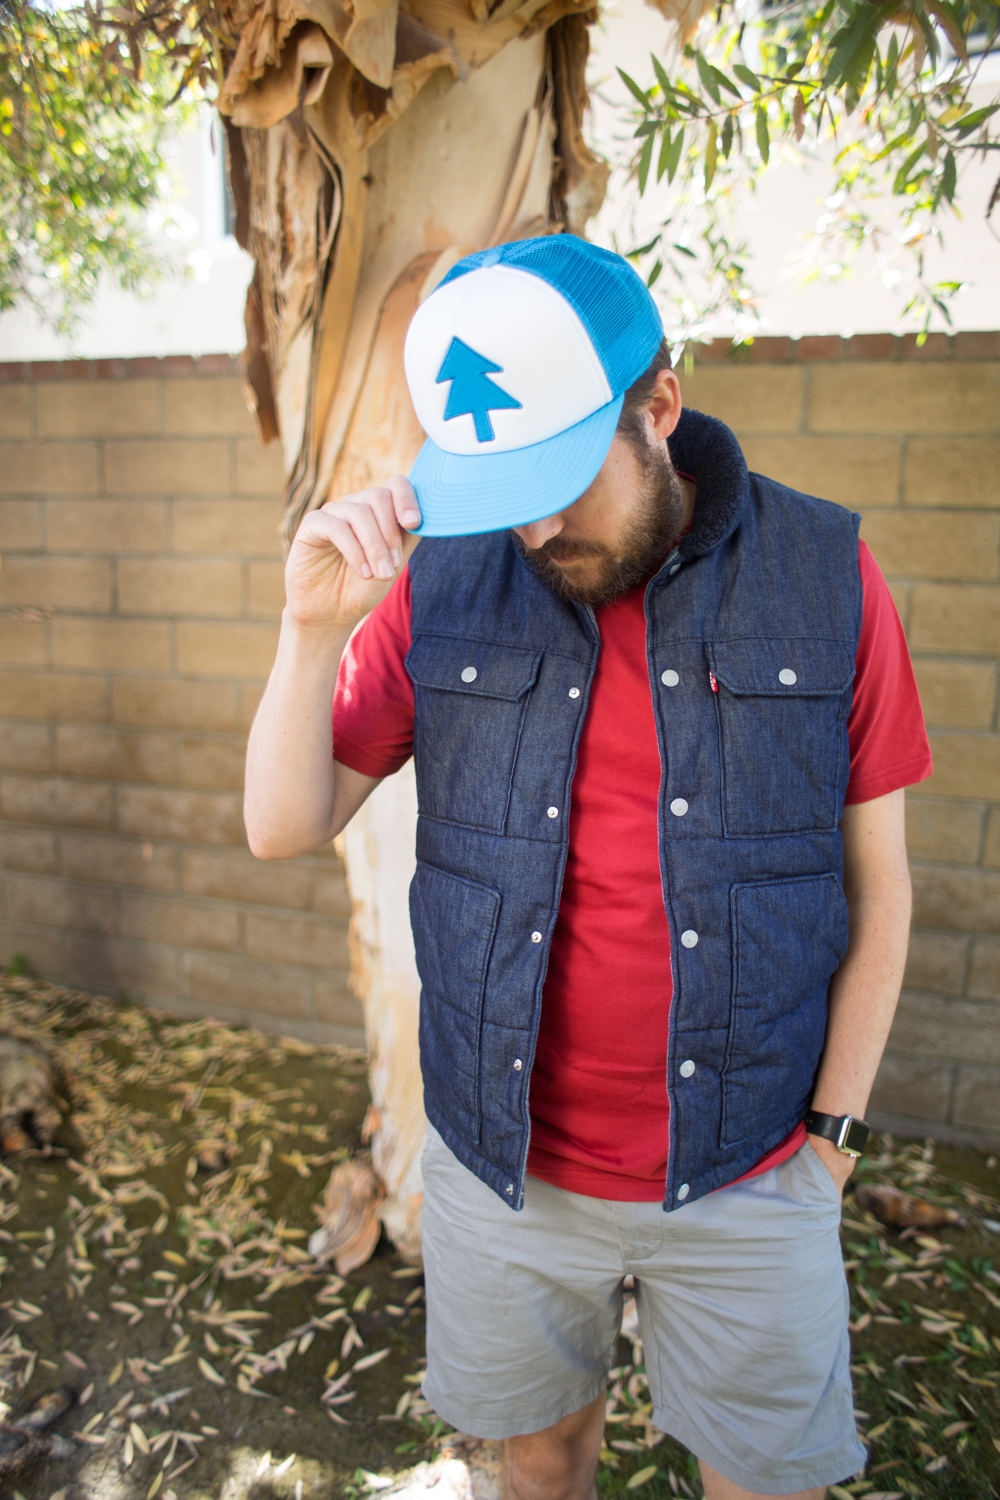 Dipper Pines From Gravity Falls Disney Bounding Outfit